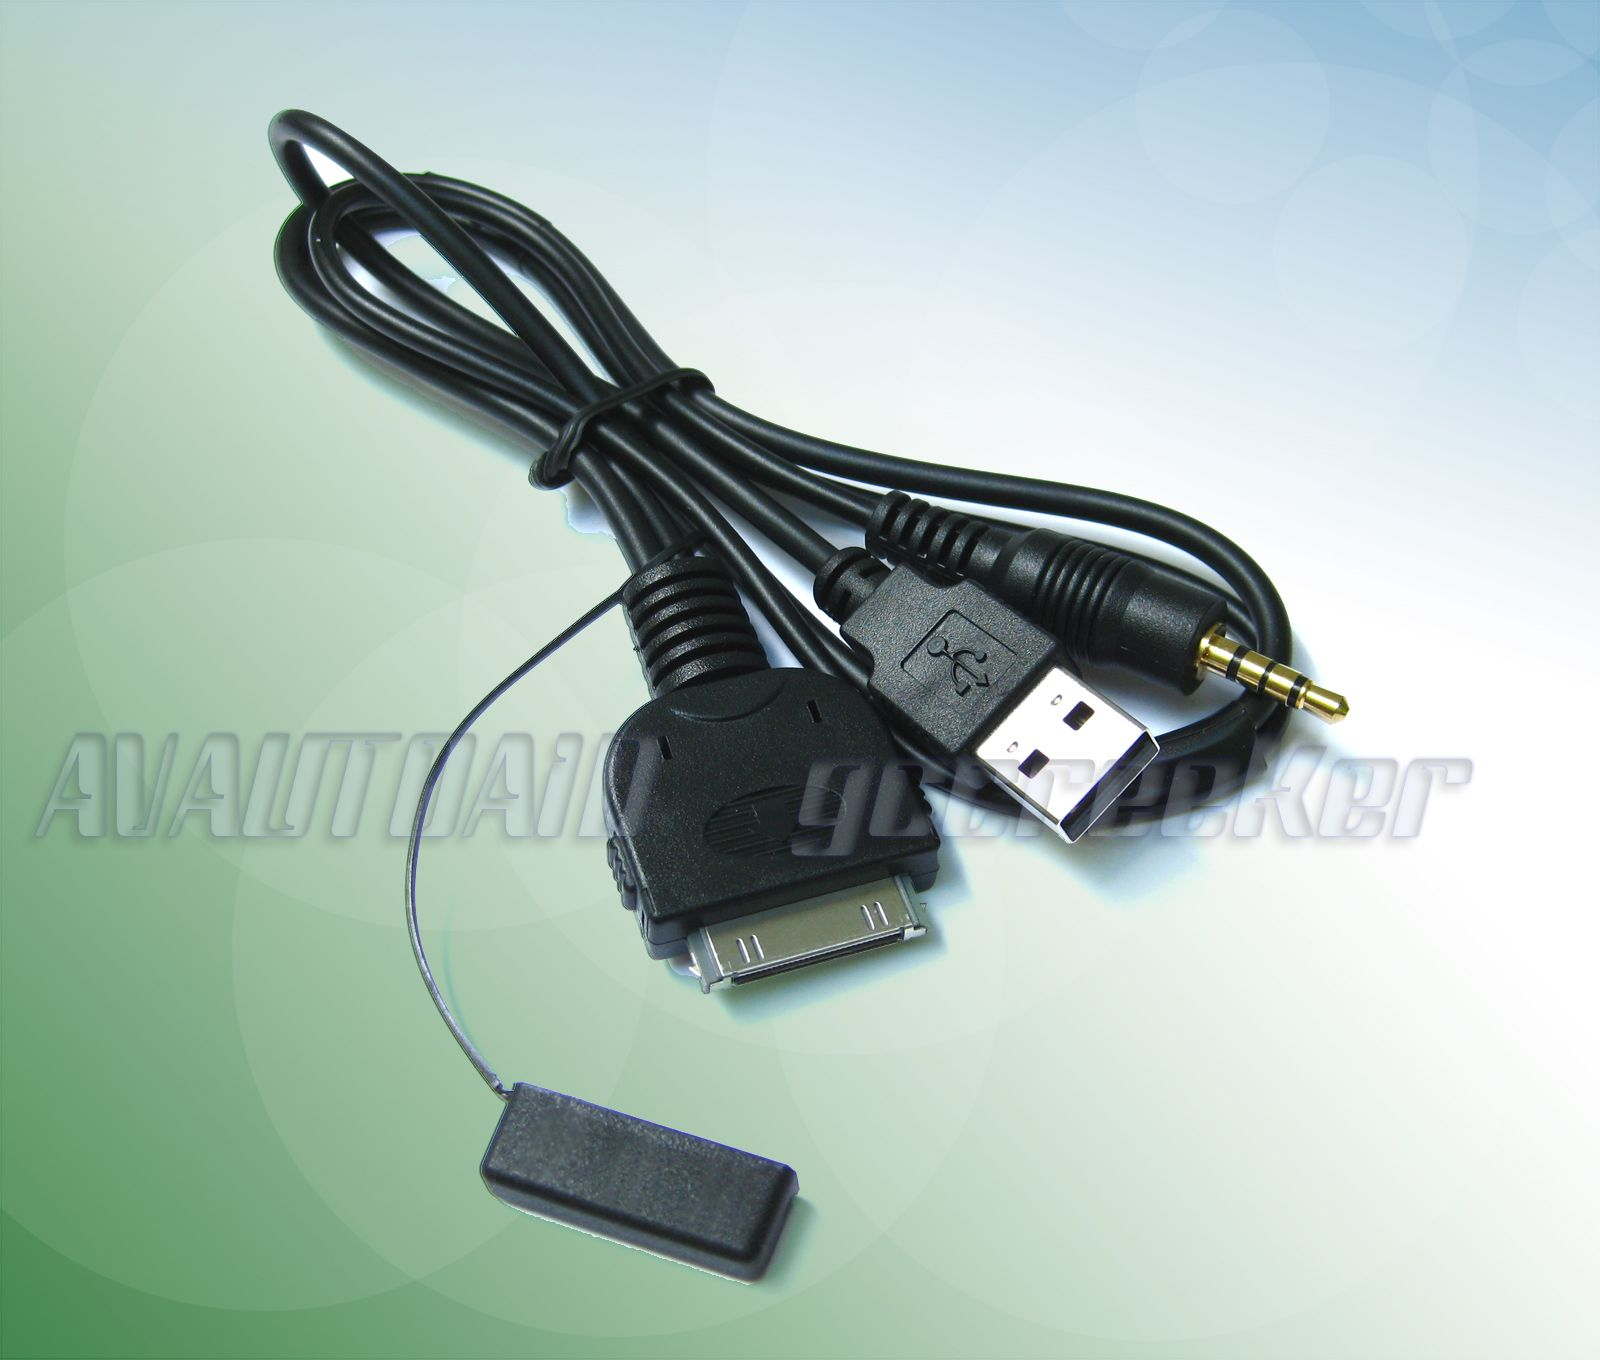 21 inch iPod iPhone AV Cable Adapter for Pioneer AVIC X930BT Headunit